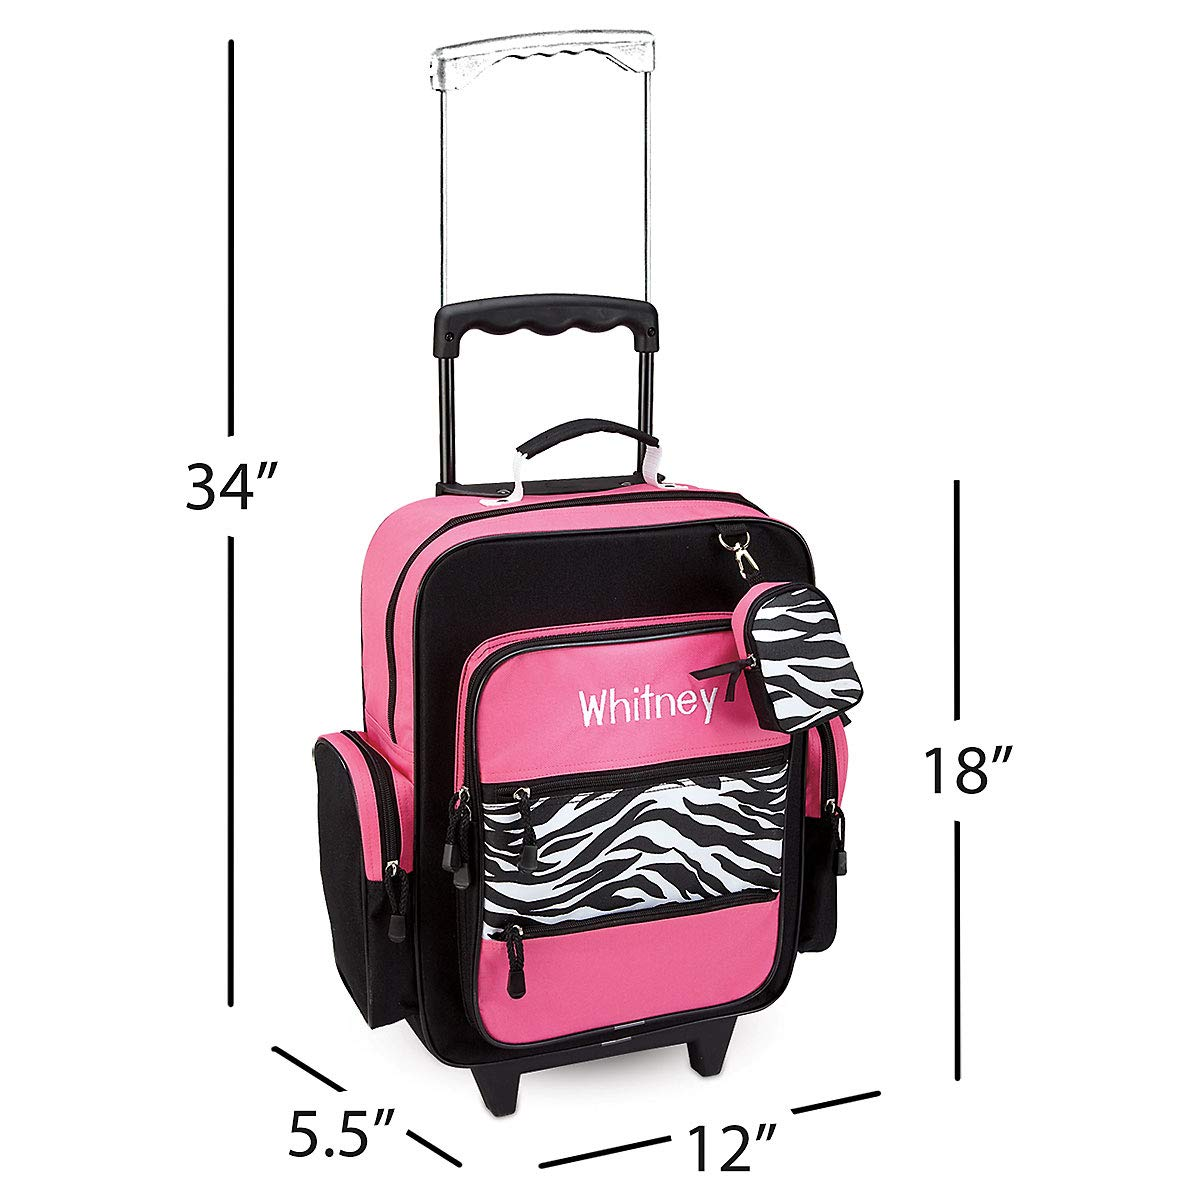 Hot Pink /& Zebra Print Design By Lillian Vernon 5 x 12 x 16.75H 808694E Personalized Rolling Luggage for Kids 5 x 12 x 16.75H